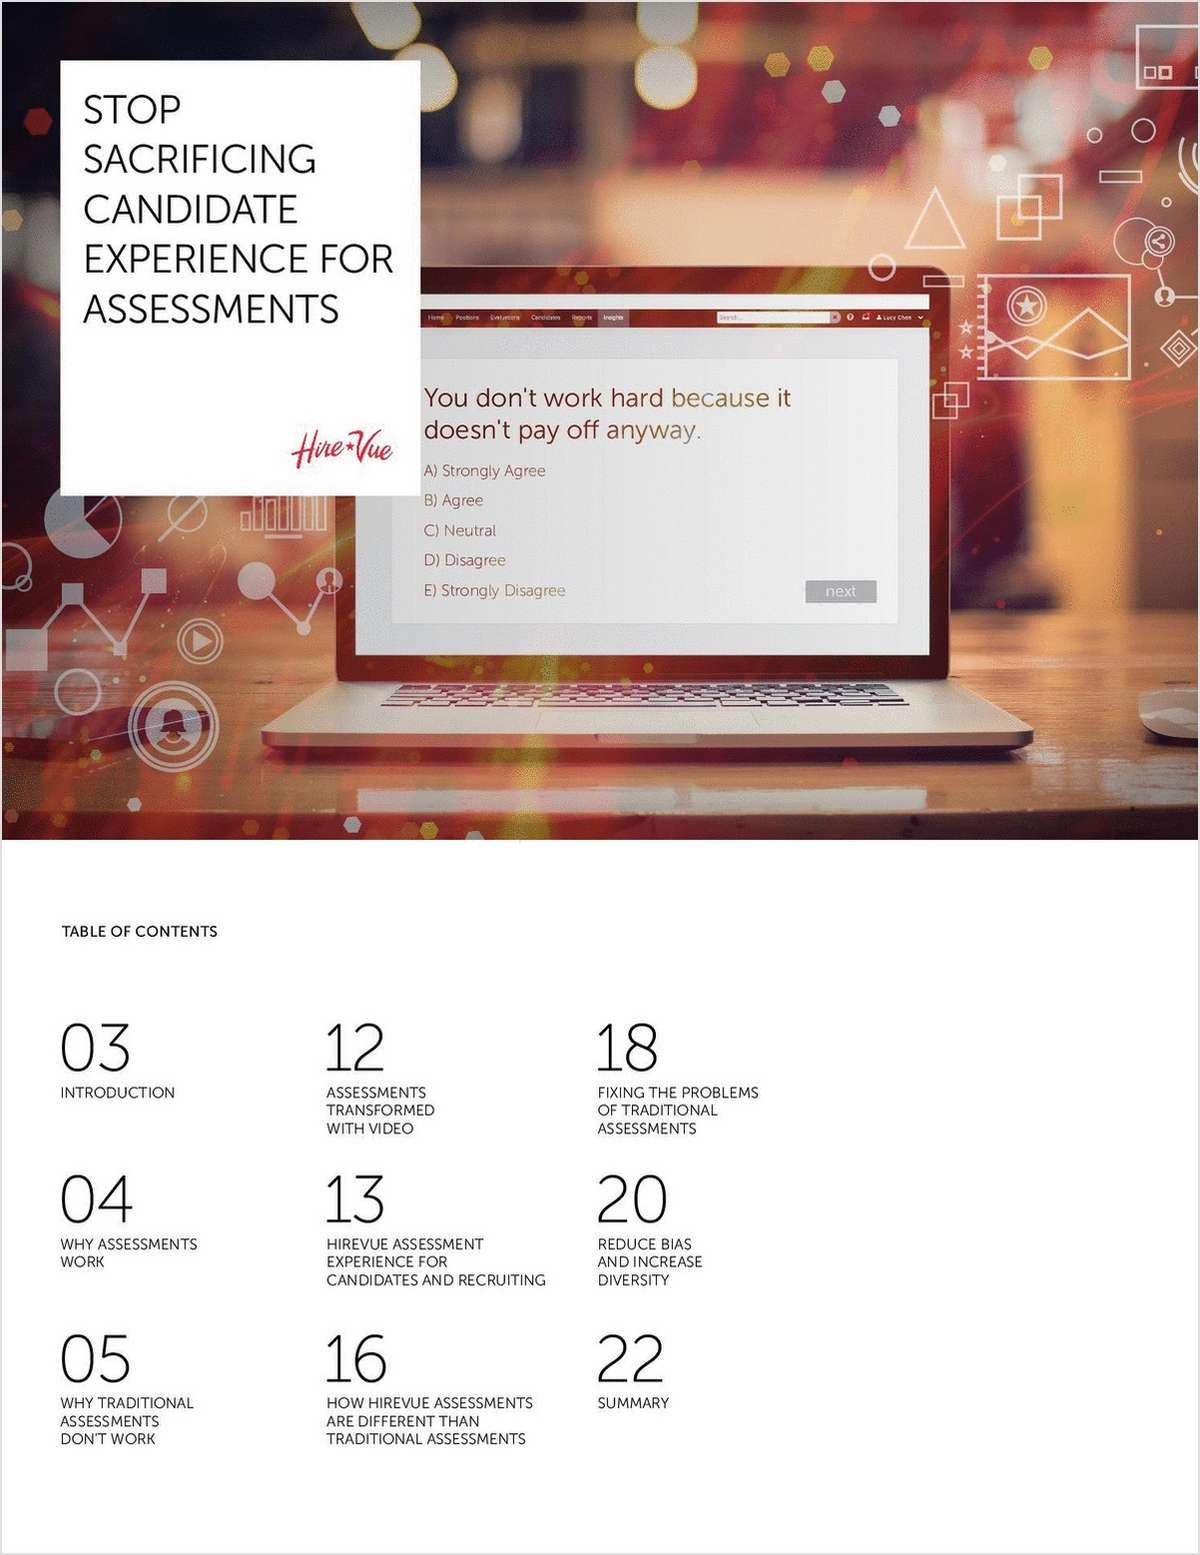 Stop Sacrificing Candidate Experience For Assessments